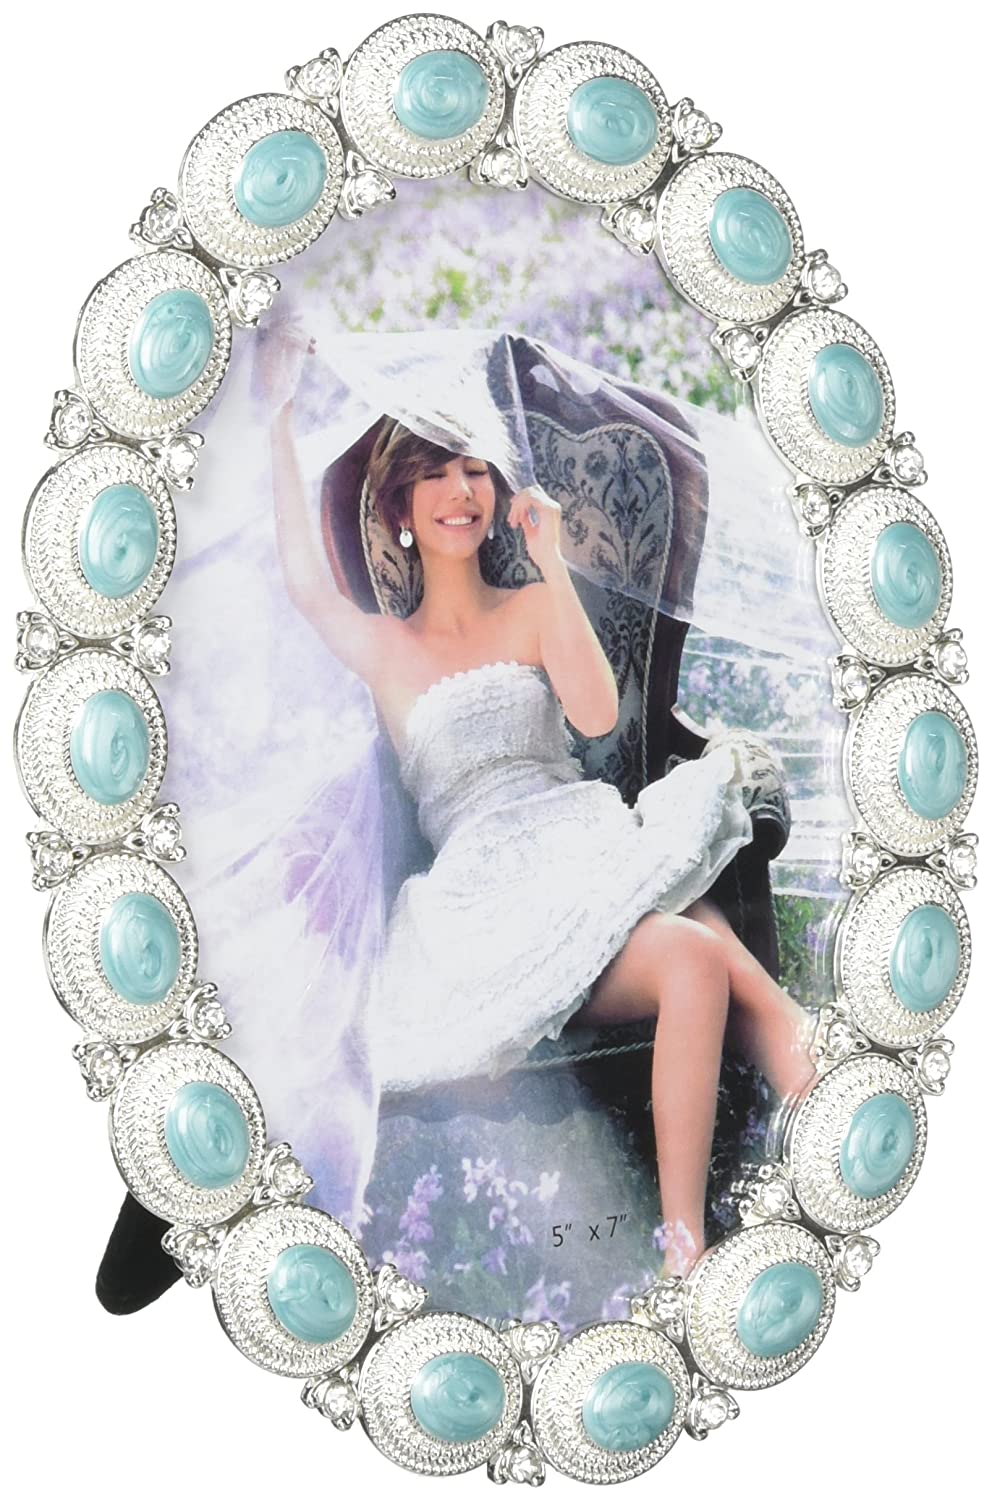 SS-KHD-10016936 Eastwind Gifts 10016936 5 x 7 Sea Cabochon Photo Frame Tom /& Co